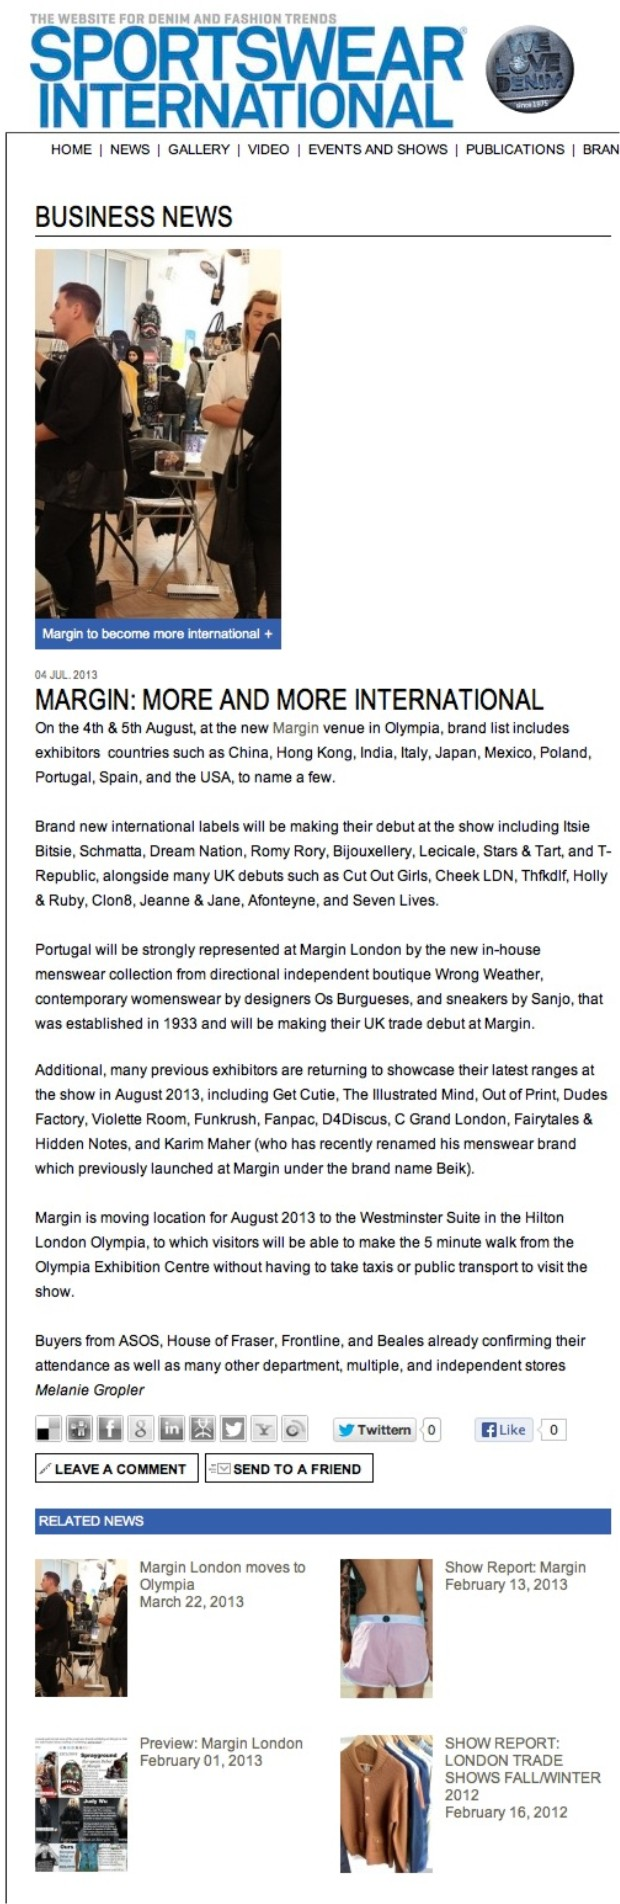 Sportswear International August 2013 MARGIN: MORE AND MORE INTERNATIONAL 04 JUL. 2013 MARGIN: MORE AND MORE INTERNATIONAL On the 4th & 5th August, at the new Margin venue in Olympia, brand list includes exhibitors  countries such as China, Hong Kong, India, Italy, Japan, Mexico, Poland, Portugal, Spain, and the USA, to name a few. Brand new international labels will be making their debut at the show including Schmatta, Dream Nation, Romy Rory, Bijouxellery, and T-Republic, alongside many UK debuts such as Cheek LDN, Thfkdlf, Holly & Ruby, Jeanne & Jane, Afonteyne, and Seven Lives. Portugal will be strongly represented at Margin London by the new in-house menswear collection from directional independent boutique Wrong Weather, and contemporary womenswear by designers Os Burgueses making their UK trade debut at Margin. Additional, many previous exhibitors are returning to showcase their latest ranges at the show in August 2013, including Get Cutie, The Illustrated Mind, Out of Print, Dudes Factory, Violette Room, Fanpac, D4Discus, C Grand London, Fairytales & Hidden Notes, and Karim Maher (who has recently renamed his menswear brand which previously launched at Margin under the brand name Beik). Margin is moving location for August 2013 to the Westminster Suite in the Hilton London Olympia, to which visitors will be able to make the 5 minute walk from the Olympia Exhibition Centre without having to take taxis or public transport to visit the show. Buyers from ASOS, House of Fraser, Frontline, and Beales already confirming their attendance as well as many other department, multiple, and independent stores Melanie Gropler